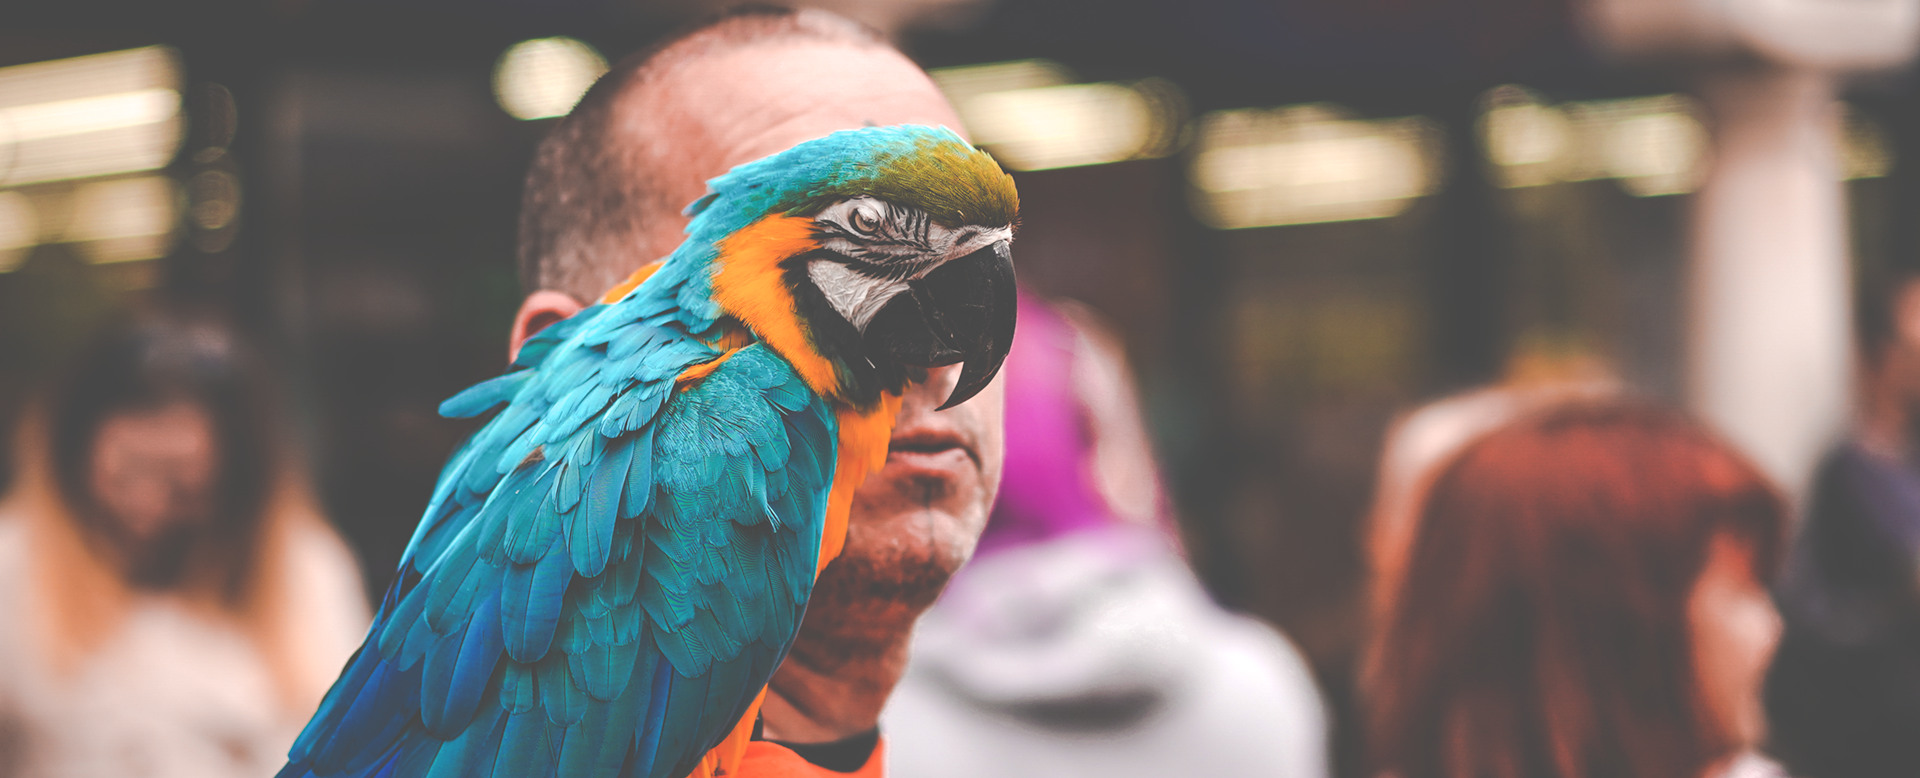 Man with parrot in High Wycombe